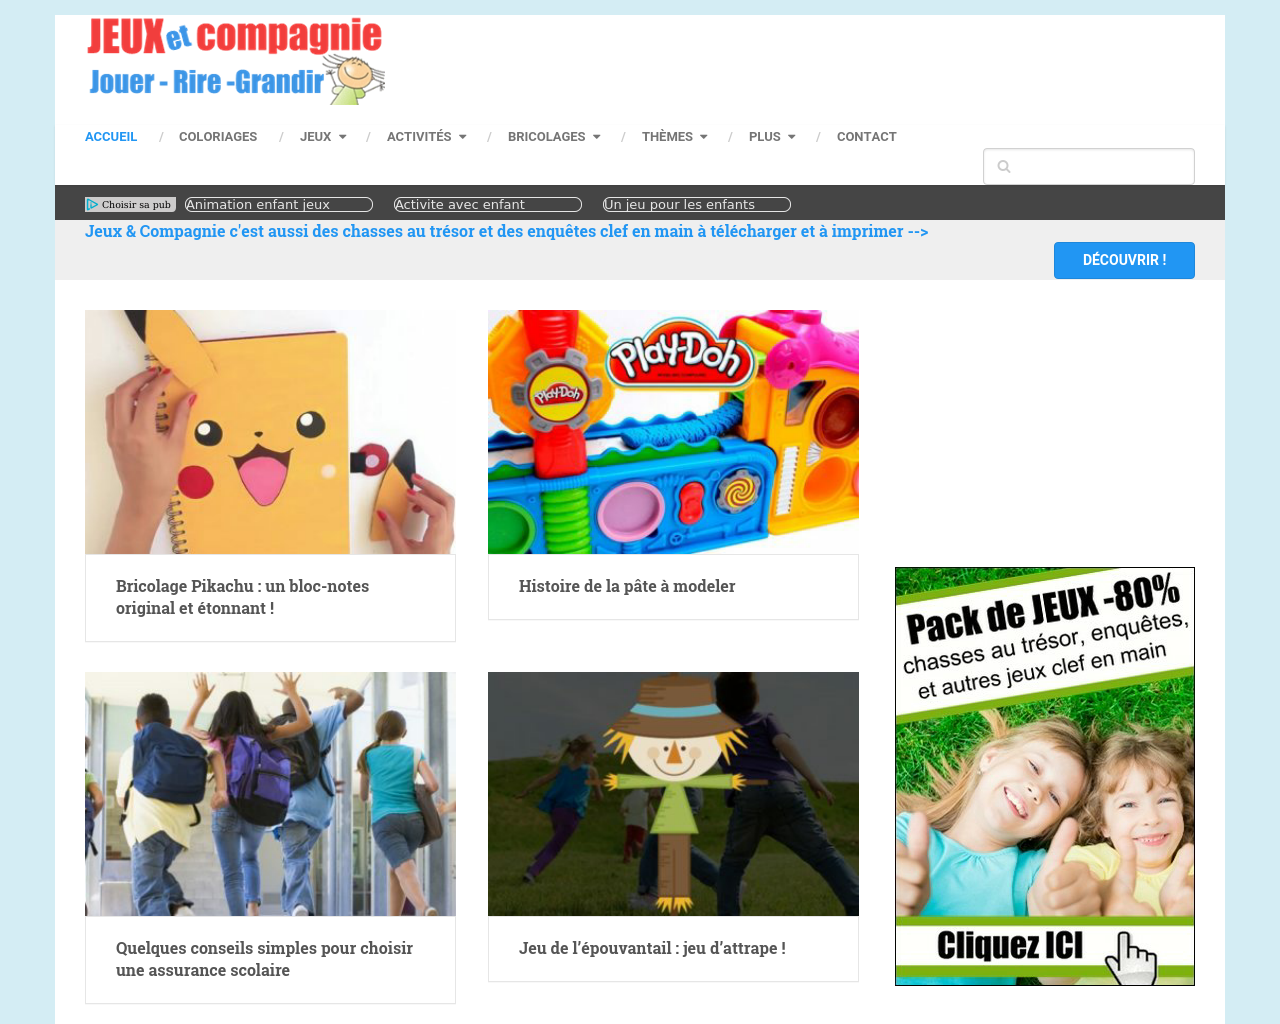 Jeux-et-Compagnie-Advertising-Reviews-Pricing